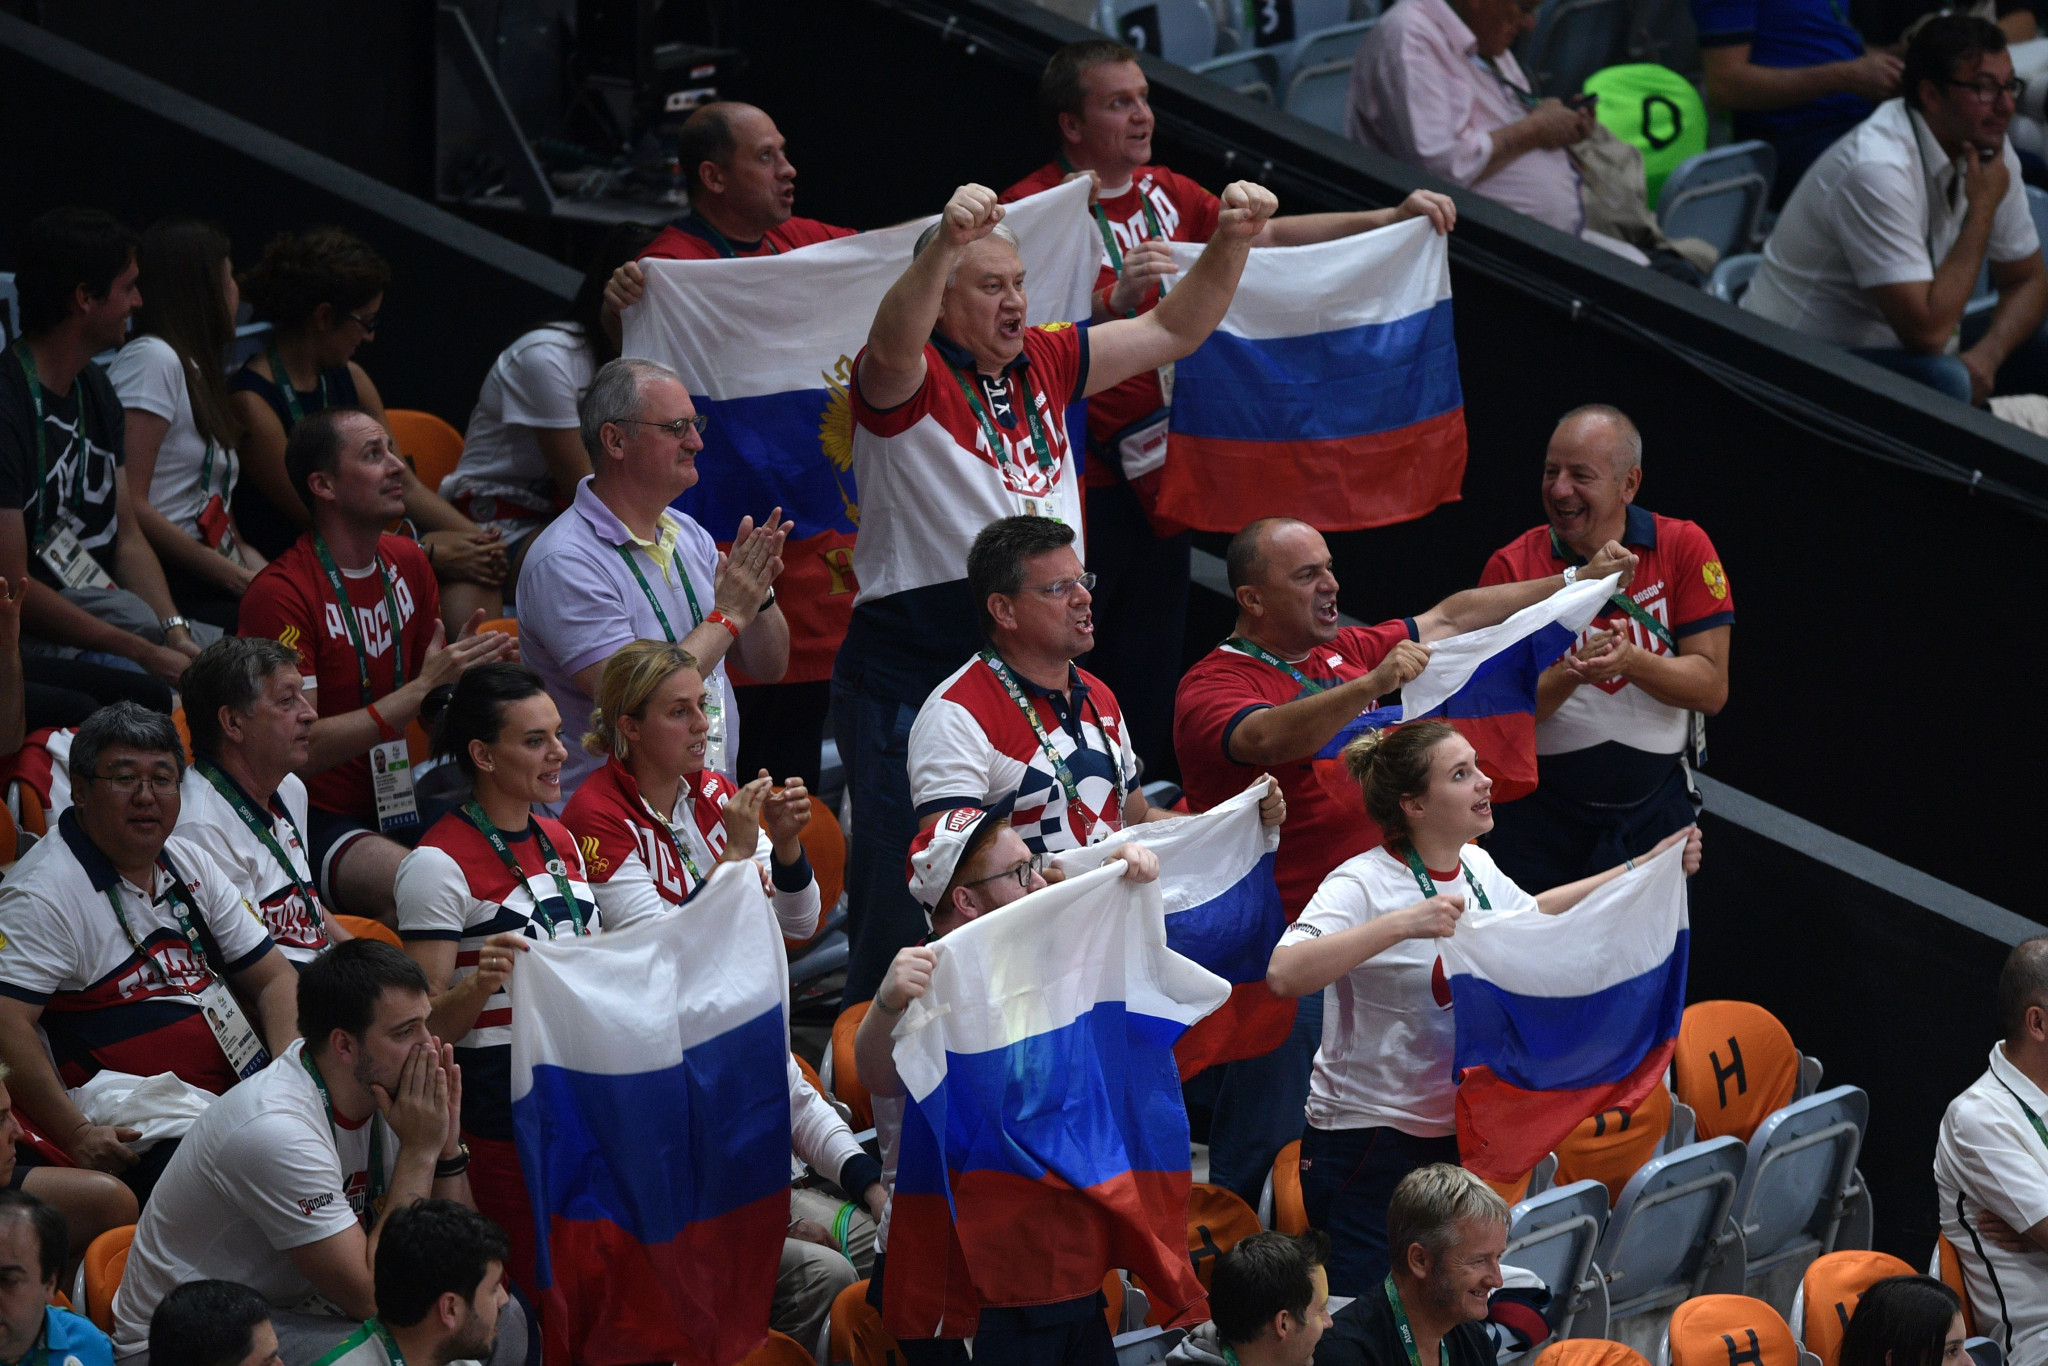 Russian Fans House at Pyeongchang 2018 to be allowed to display national flags and symbols